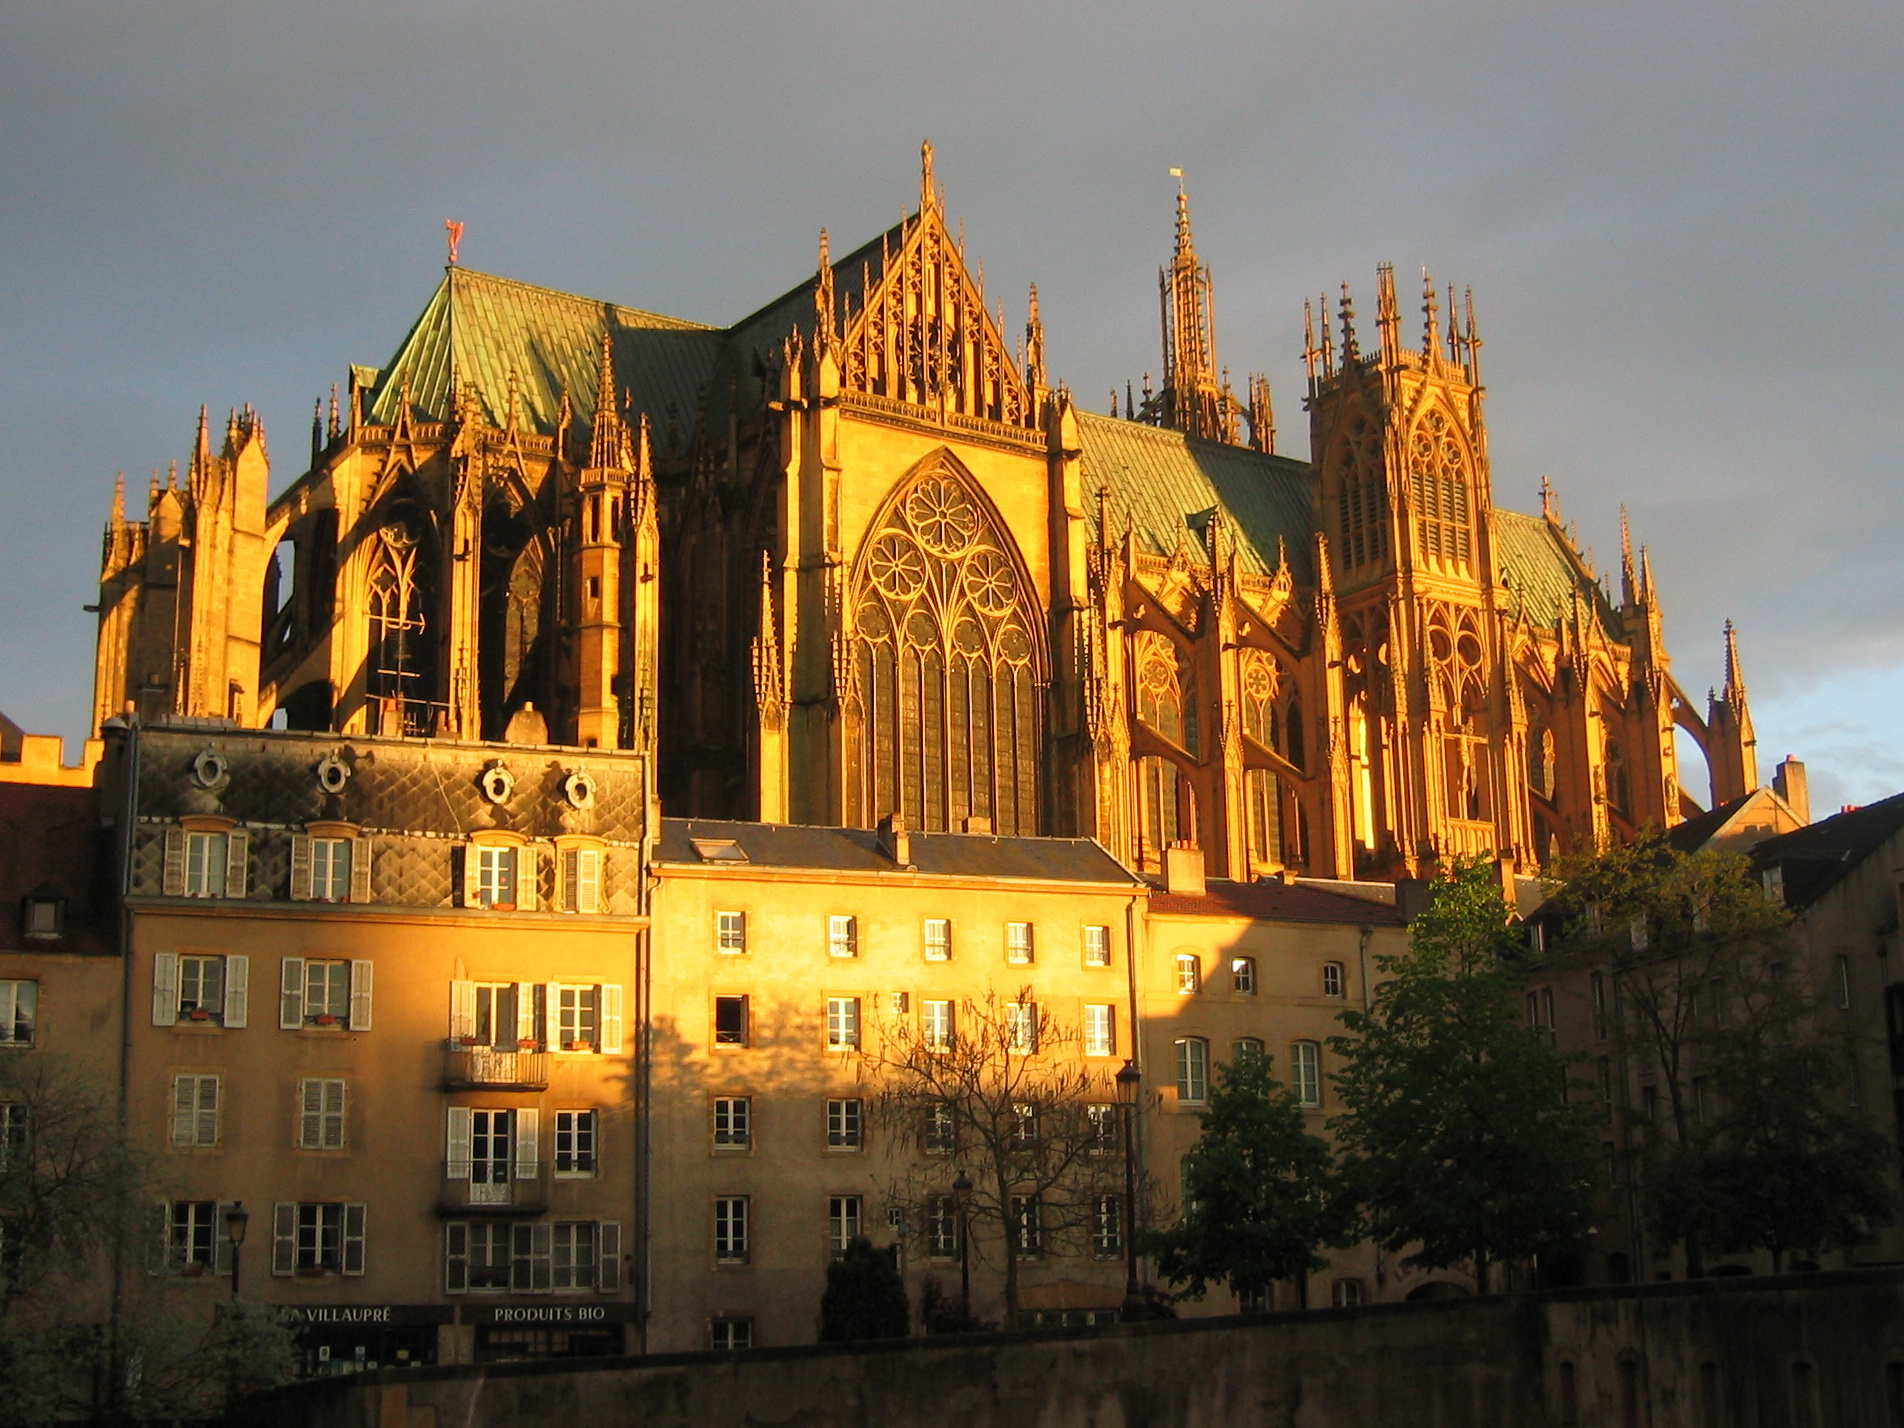 http://upload.wikimedia.org/wikipedia/commons/8/82/Cathedrale_metz_2003.jpg